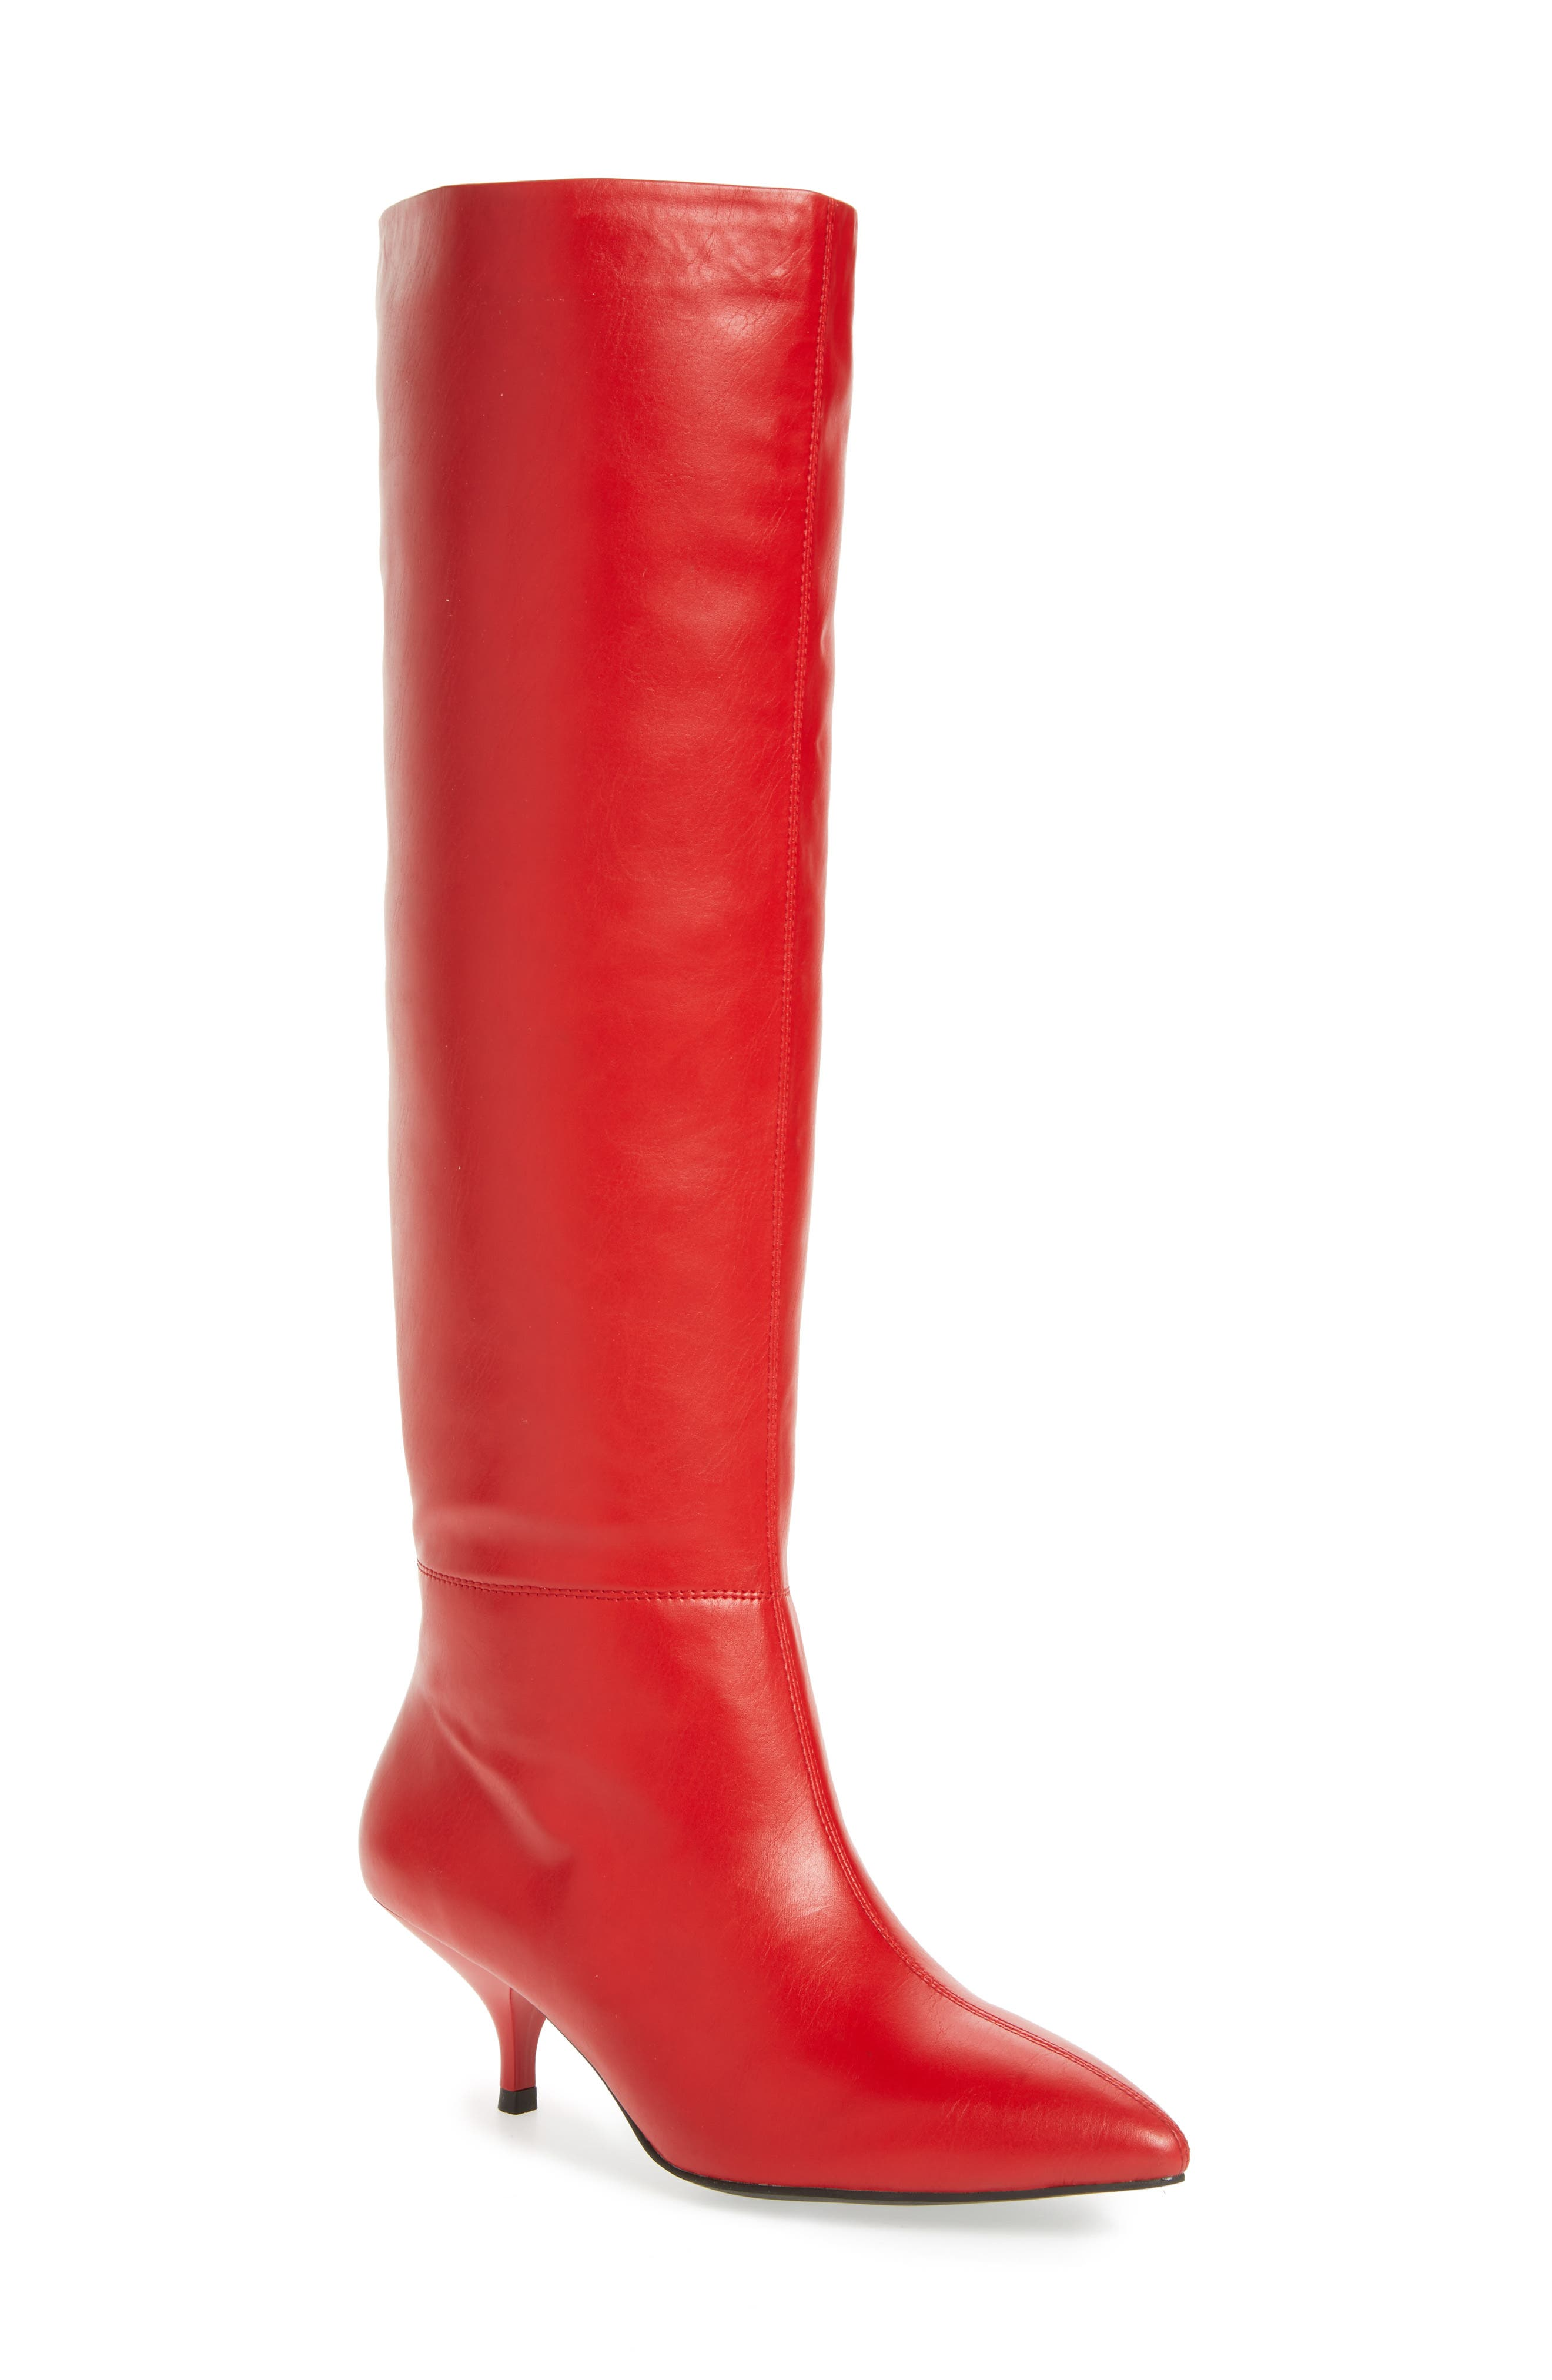 Germany Knee High Boot,                             Main thumbnail 1, color,                             Red